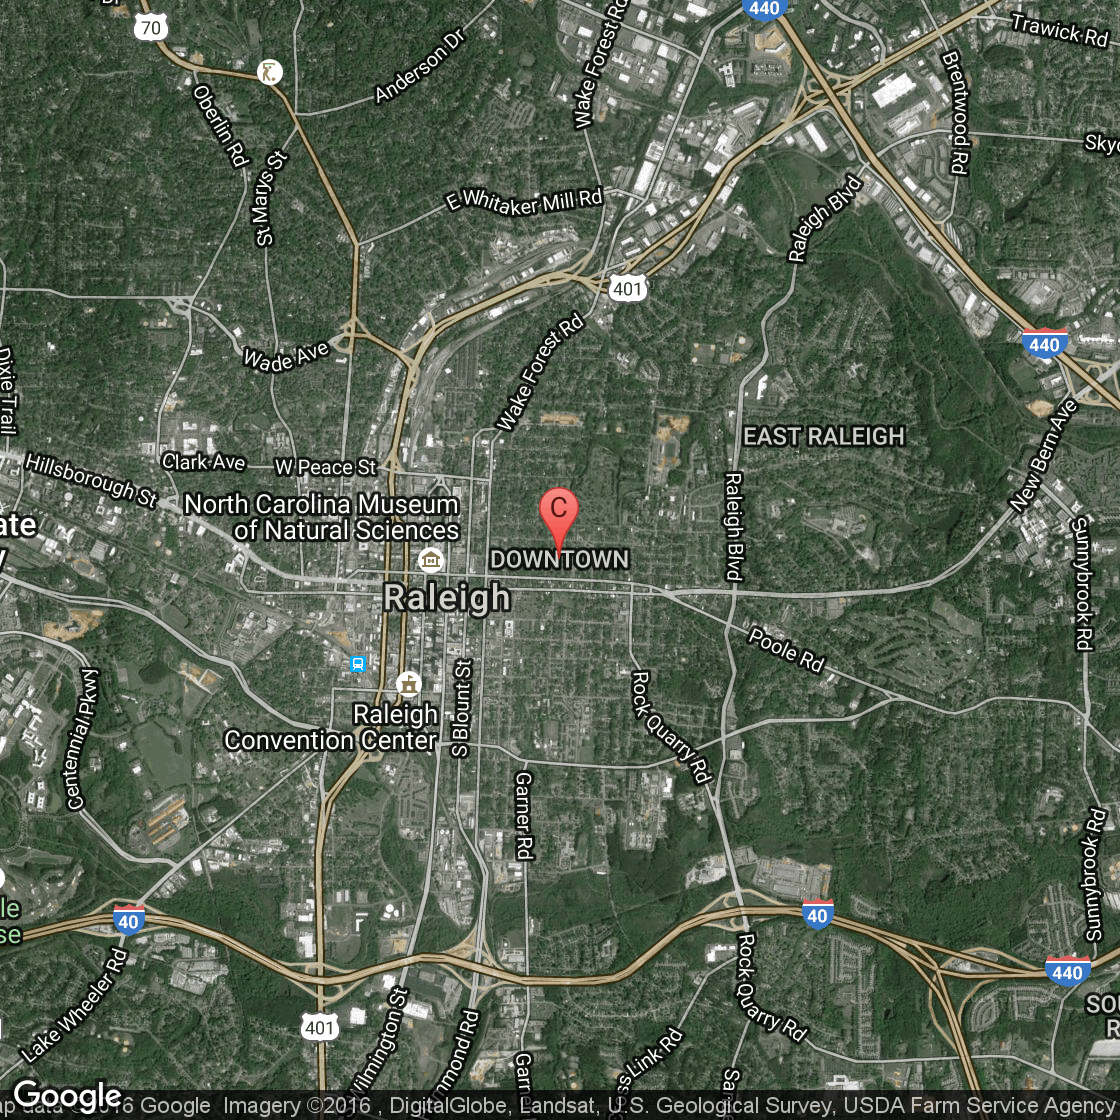 Hotels In Downtown Raleigh North Carolina  USA Today